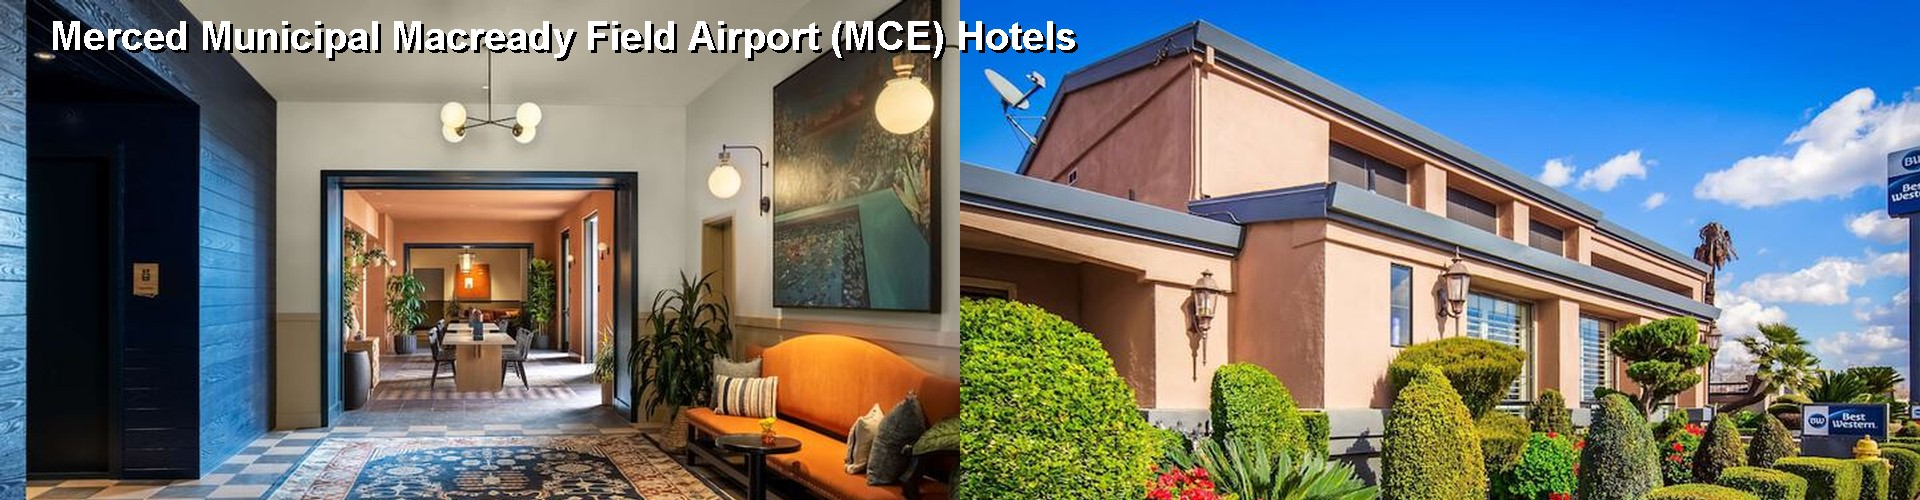 5 Best Hotels near Merced Municipal Macready Field Airport (MCE)